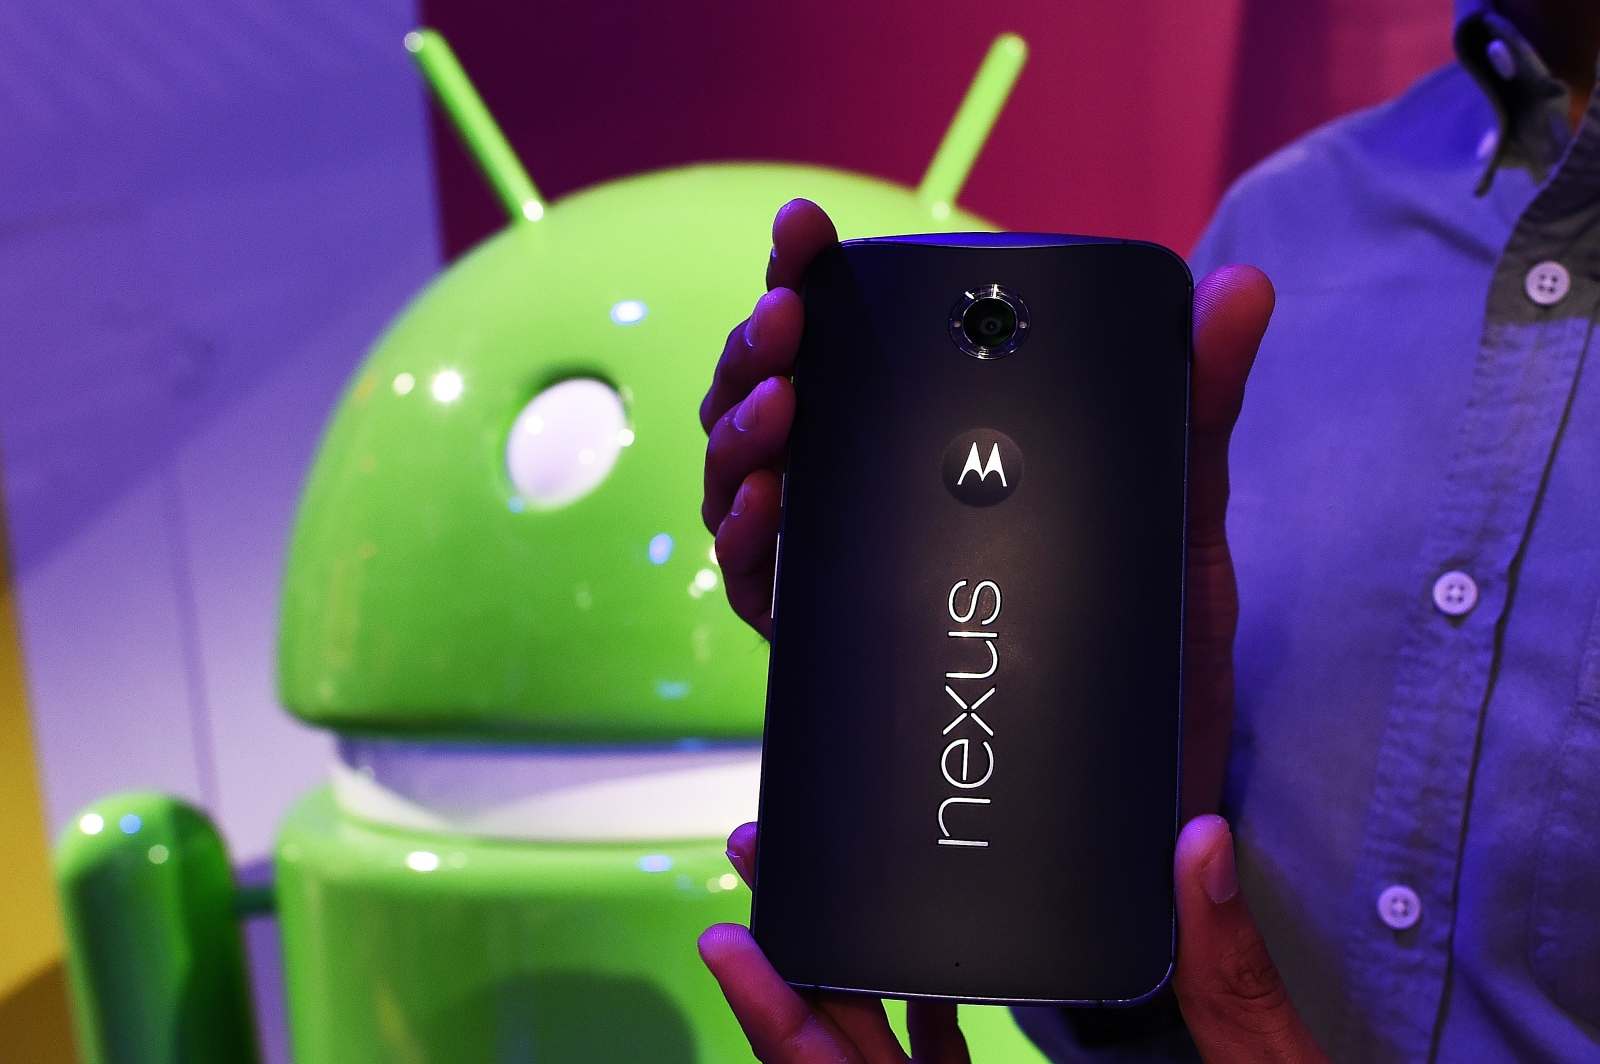 Google to drop Nexus branding